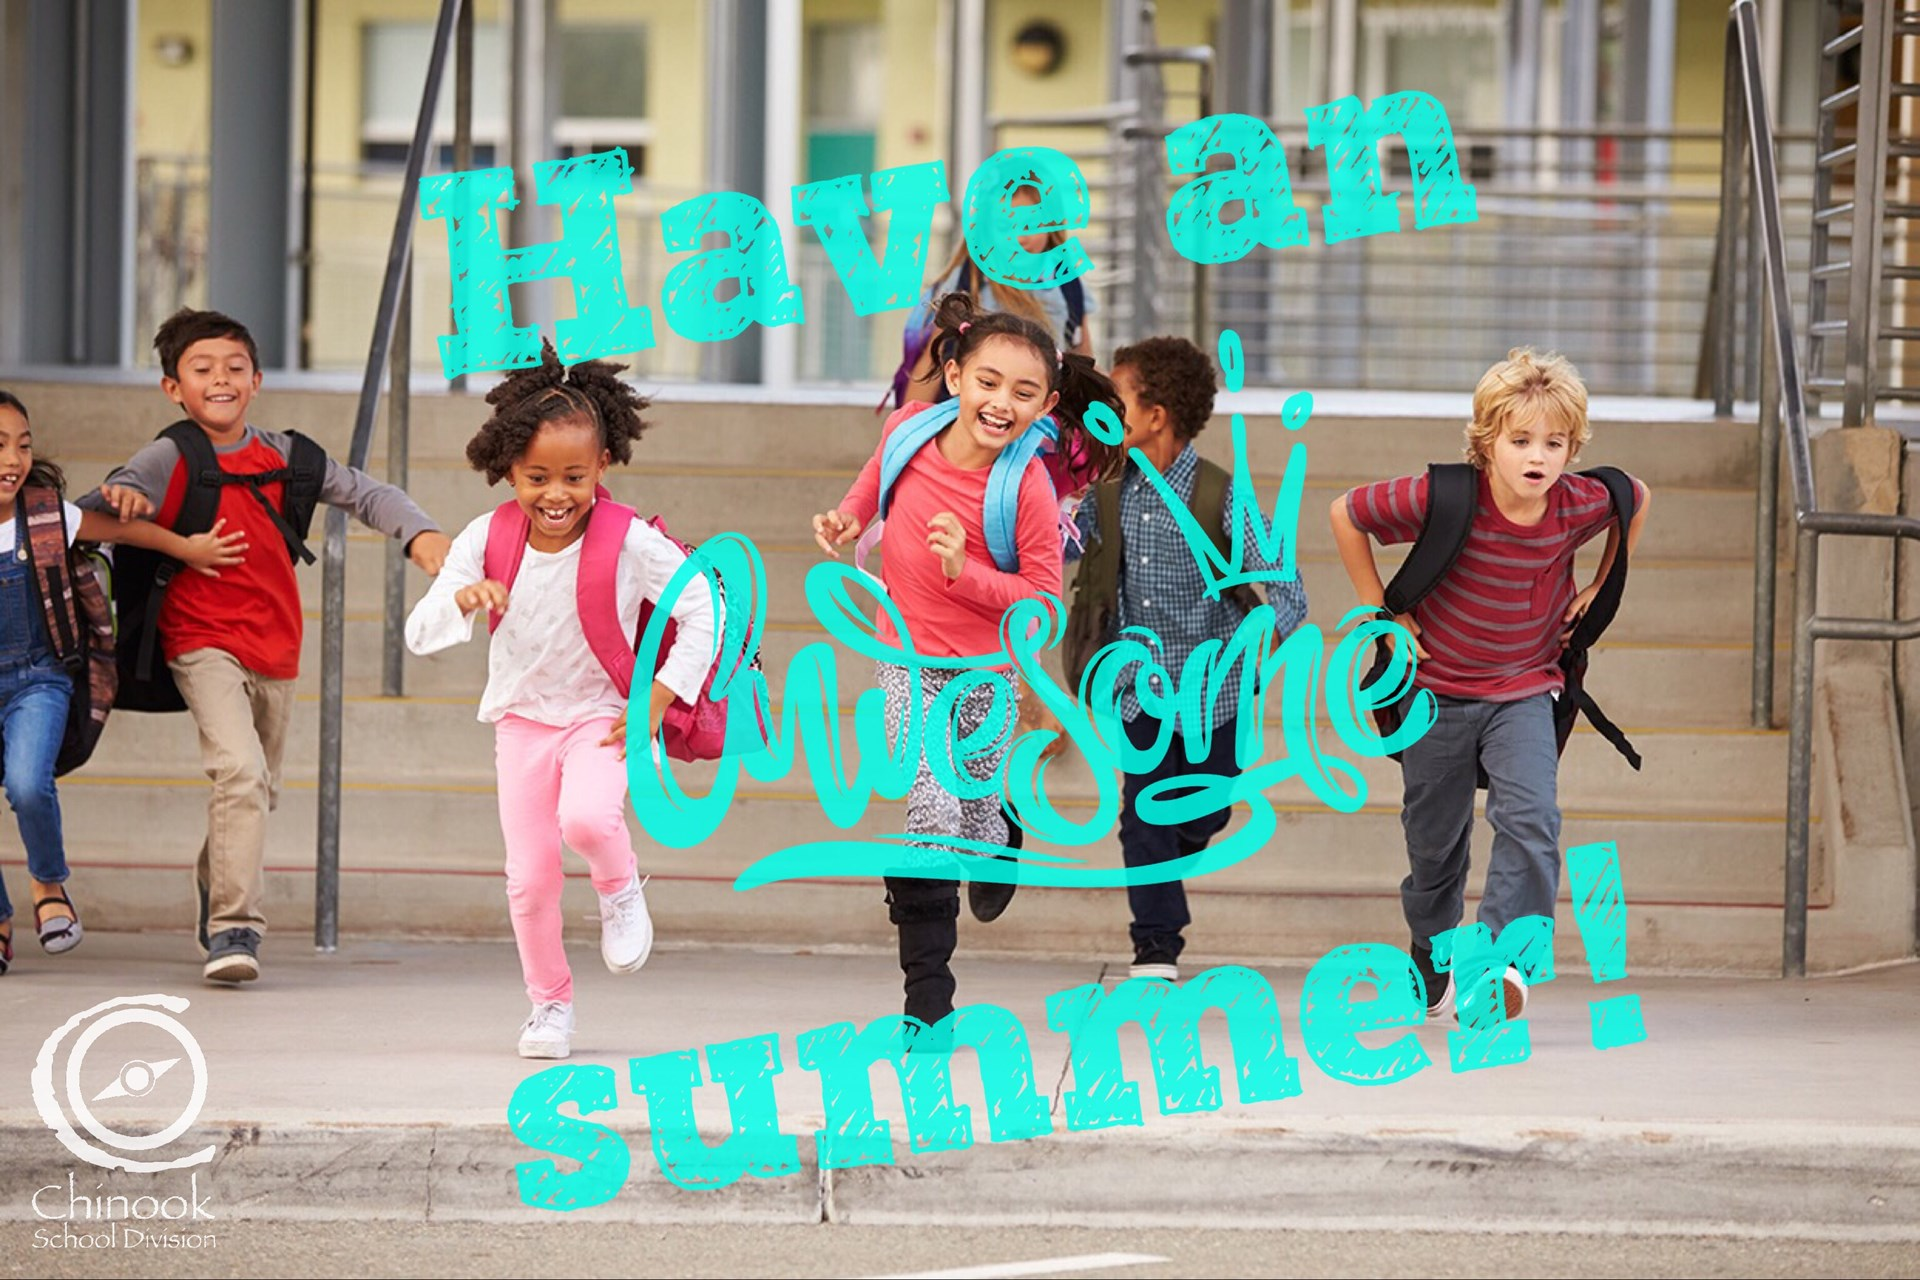 Chinook students, staff and families: Thank you for a wonderful year!